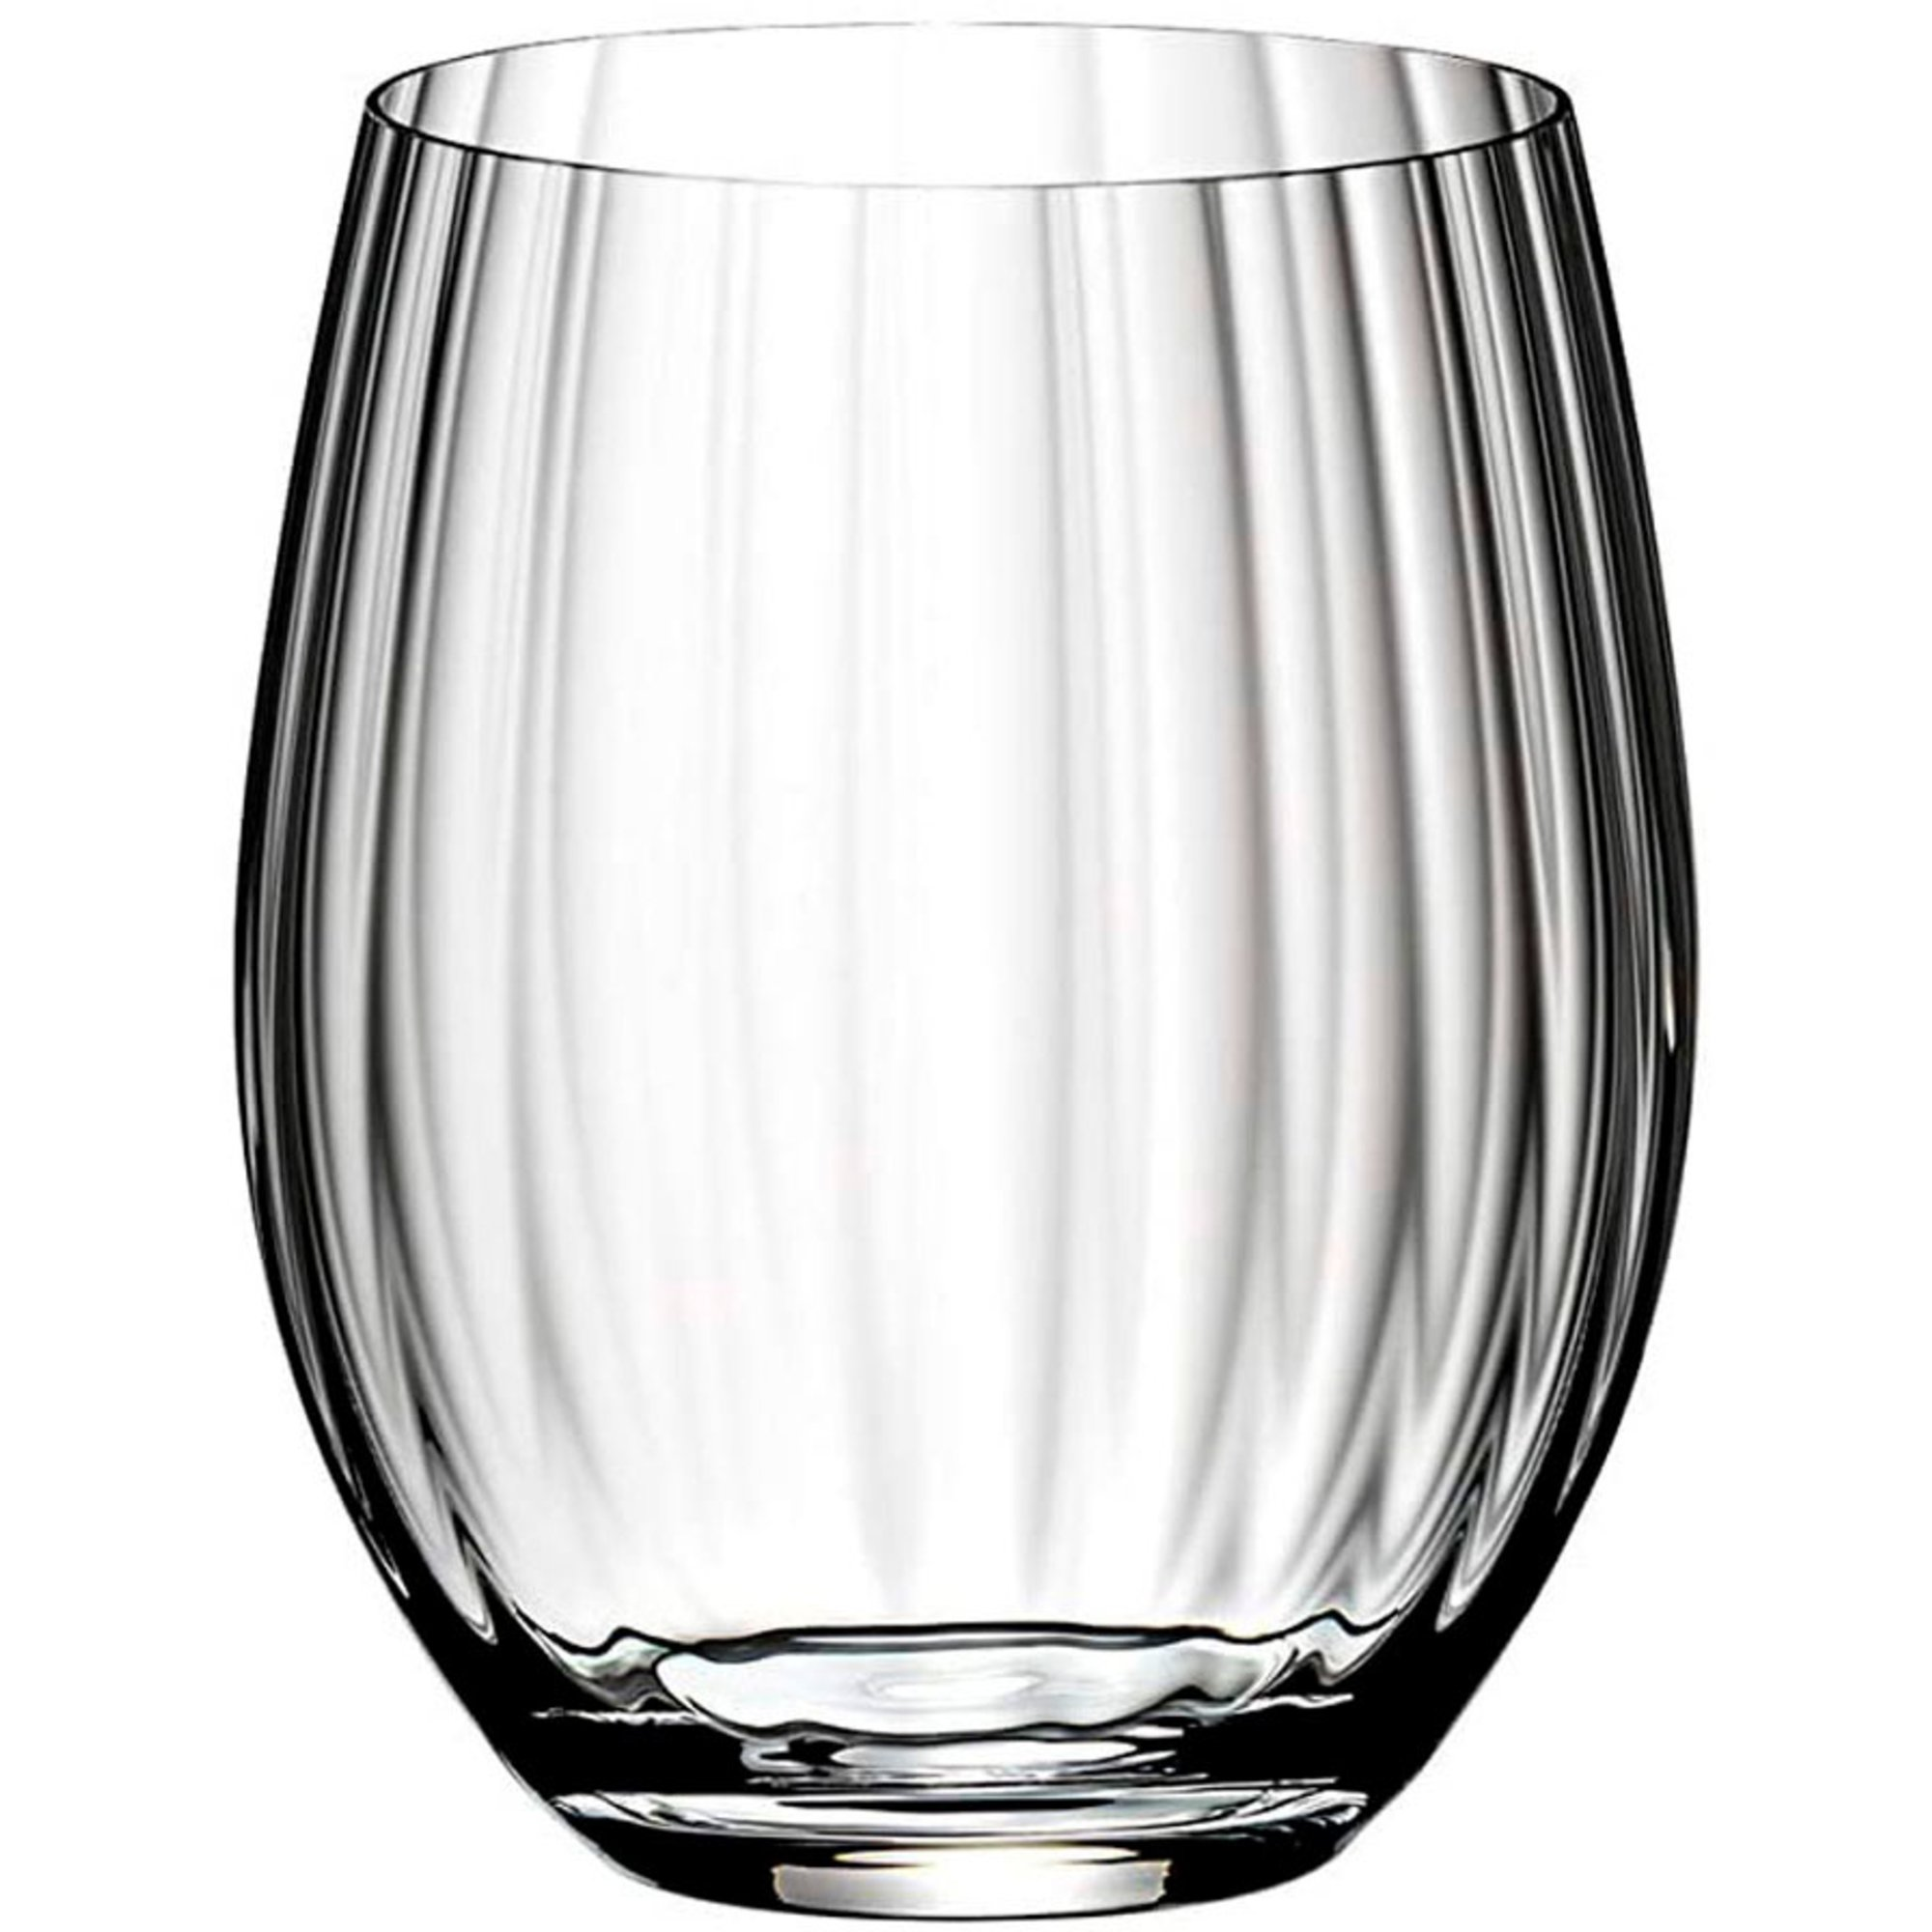 Riedel Mixing Tonic Glas 4 st